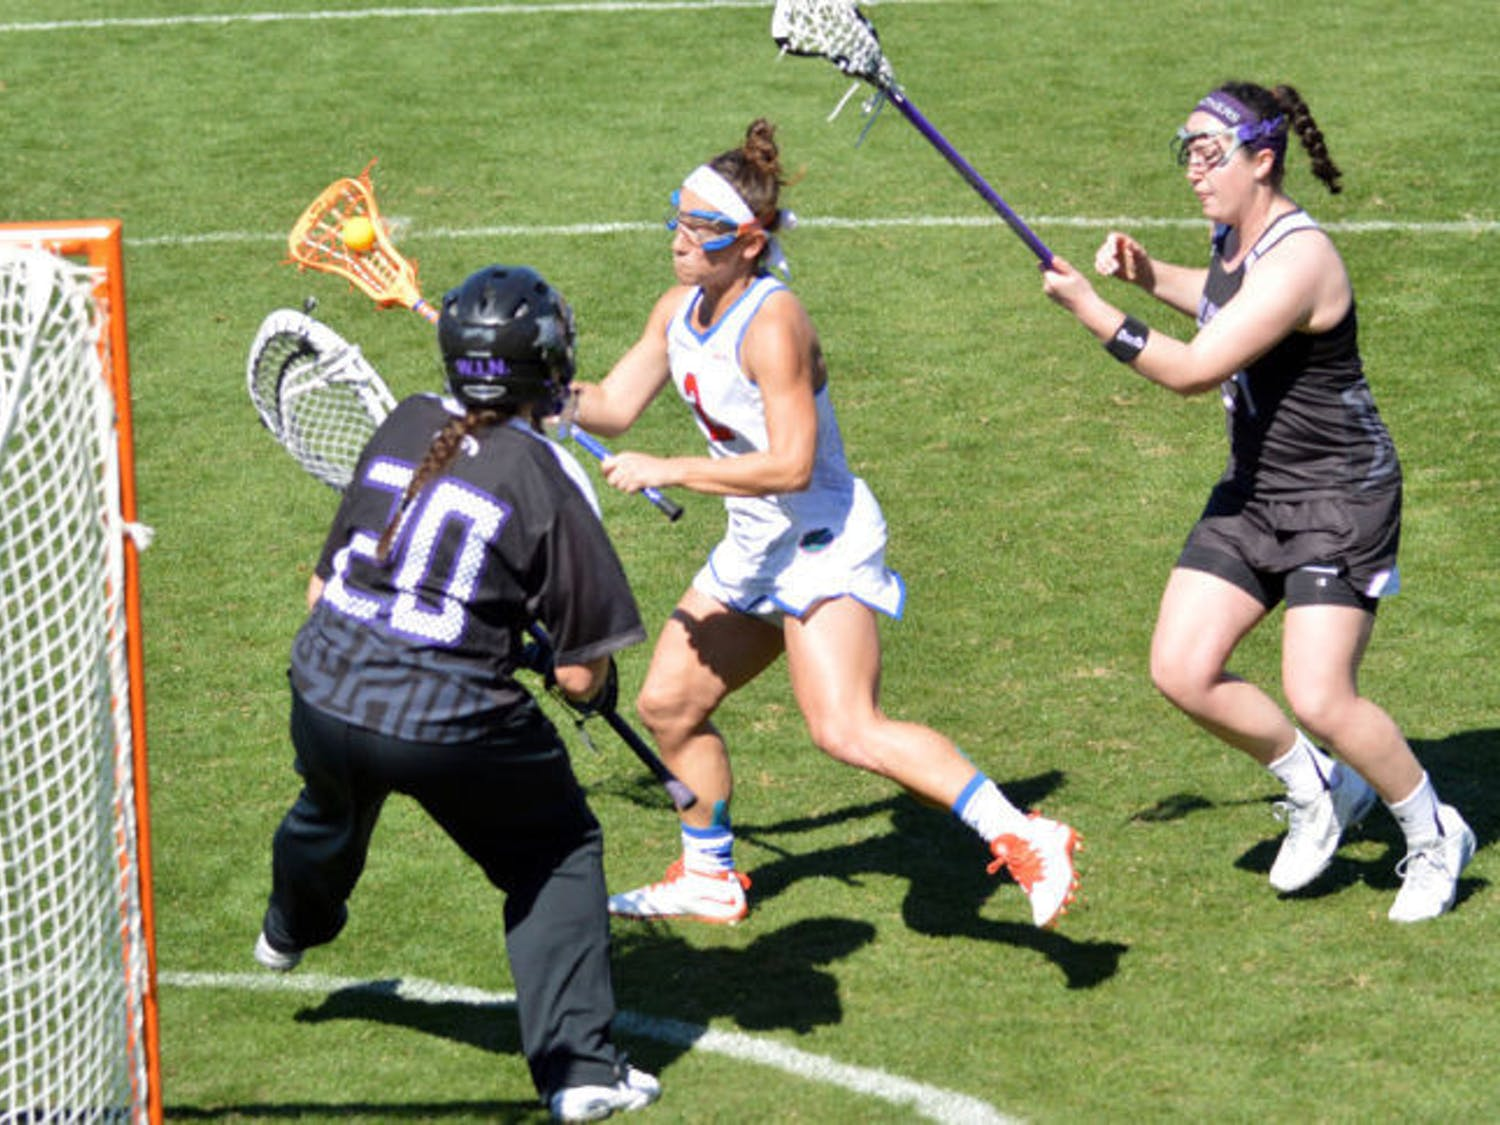 Sammi Burgess attempts a shot during Florida's 18-7 win against High Point on Feb. 15 at Donald R. Dizney Stadium. Burgess, the ALC Rookie of the Week, scored a career-high four goals against Vanderbilt on Sunday.